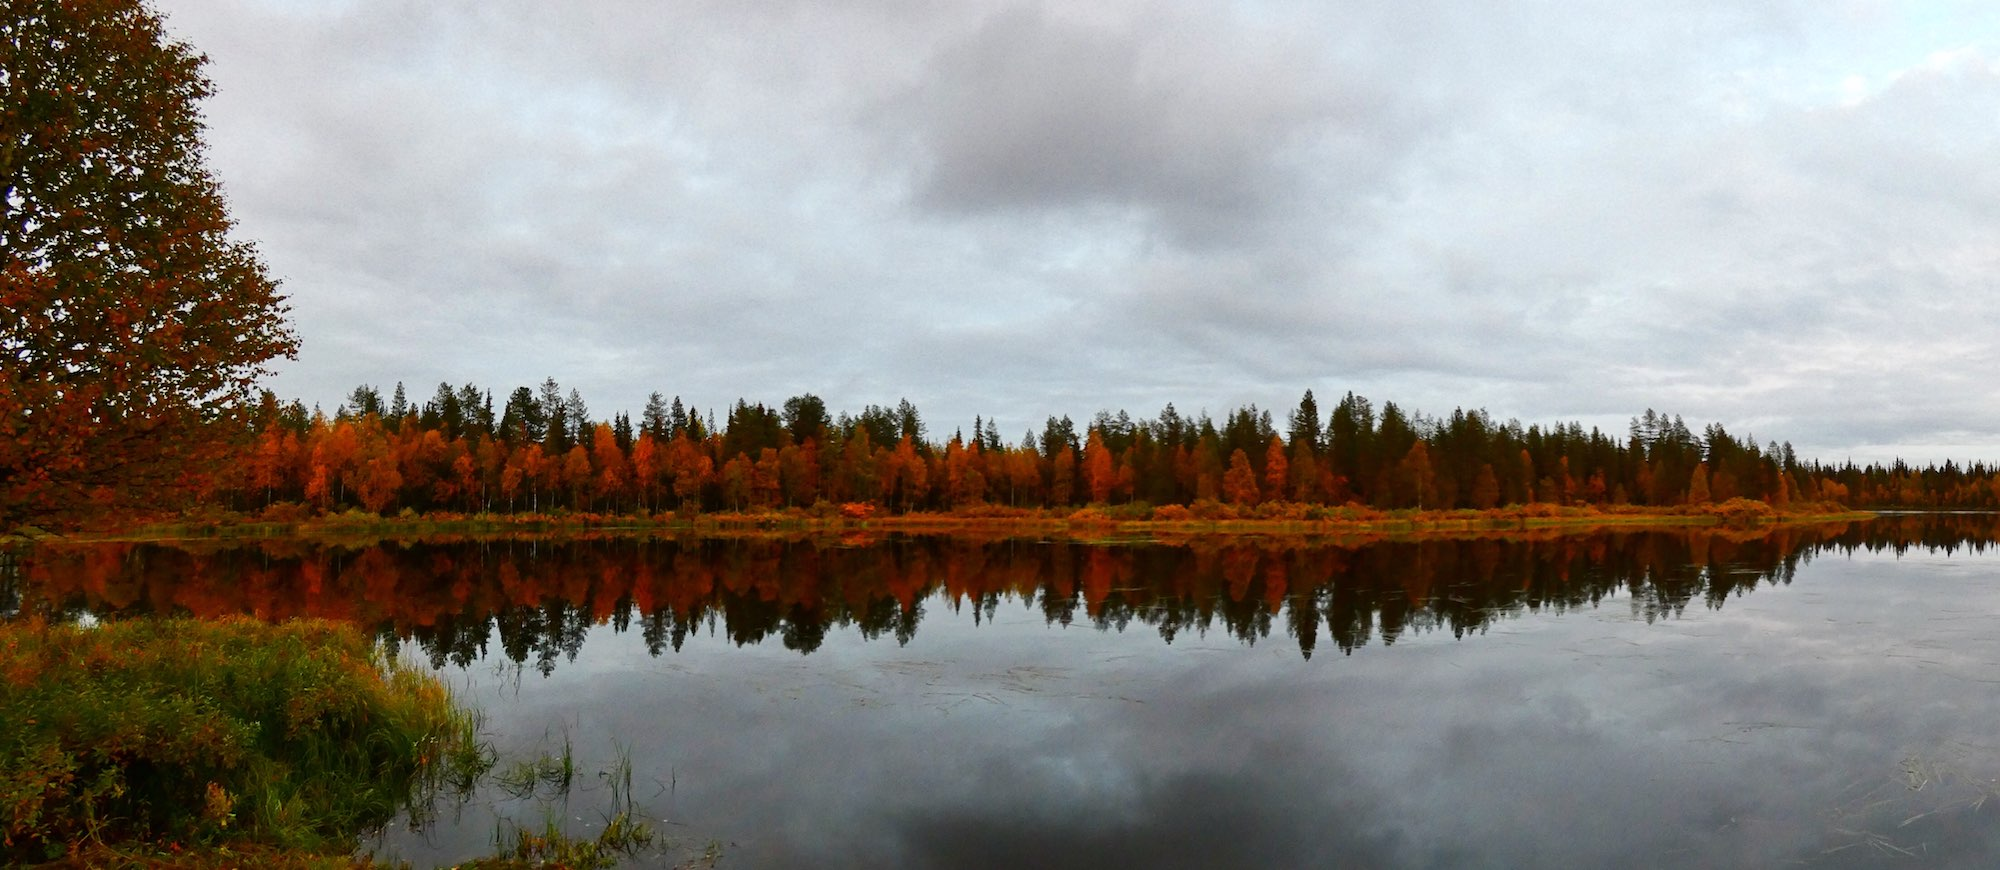 Indian Summer in Finnland